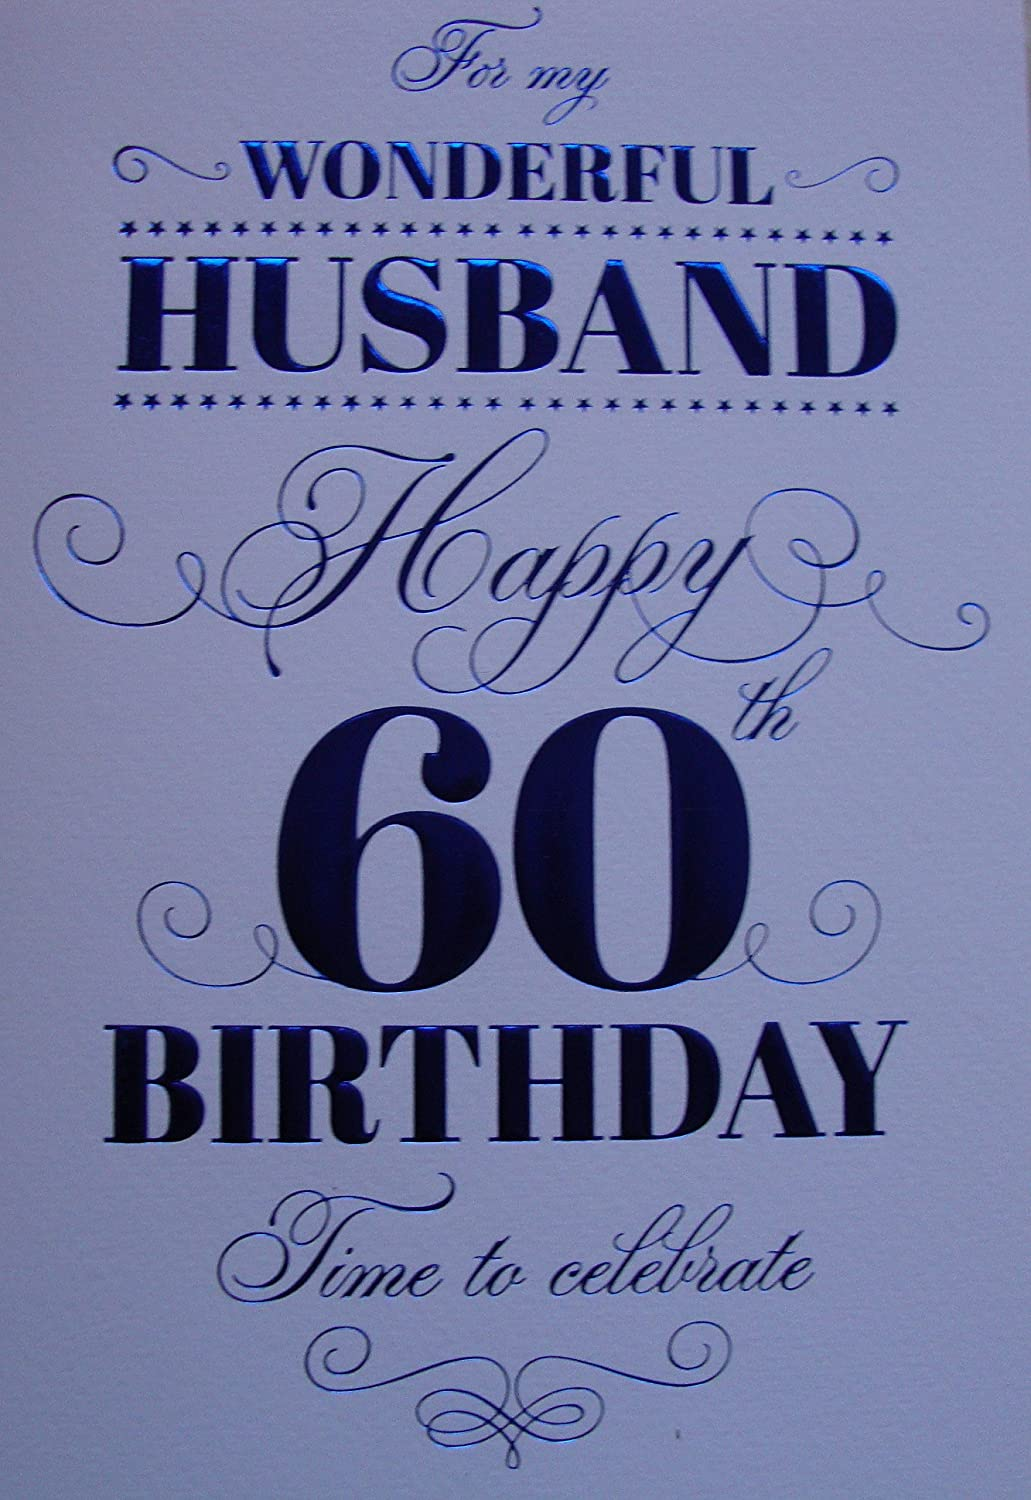 Husband 60th Birthday Birthday Card Amazoncouk Kitchen Home – Birthday Card for My Husband